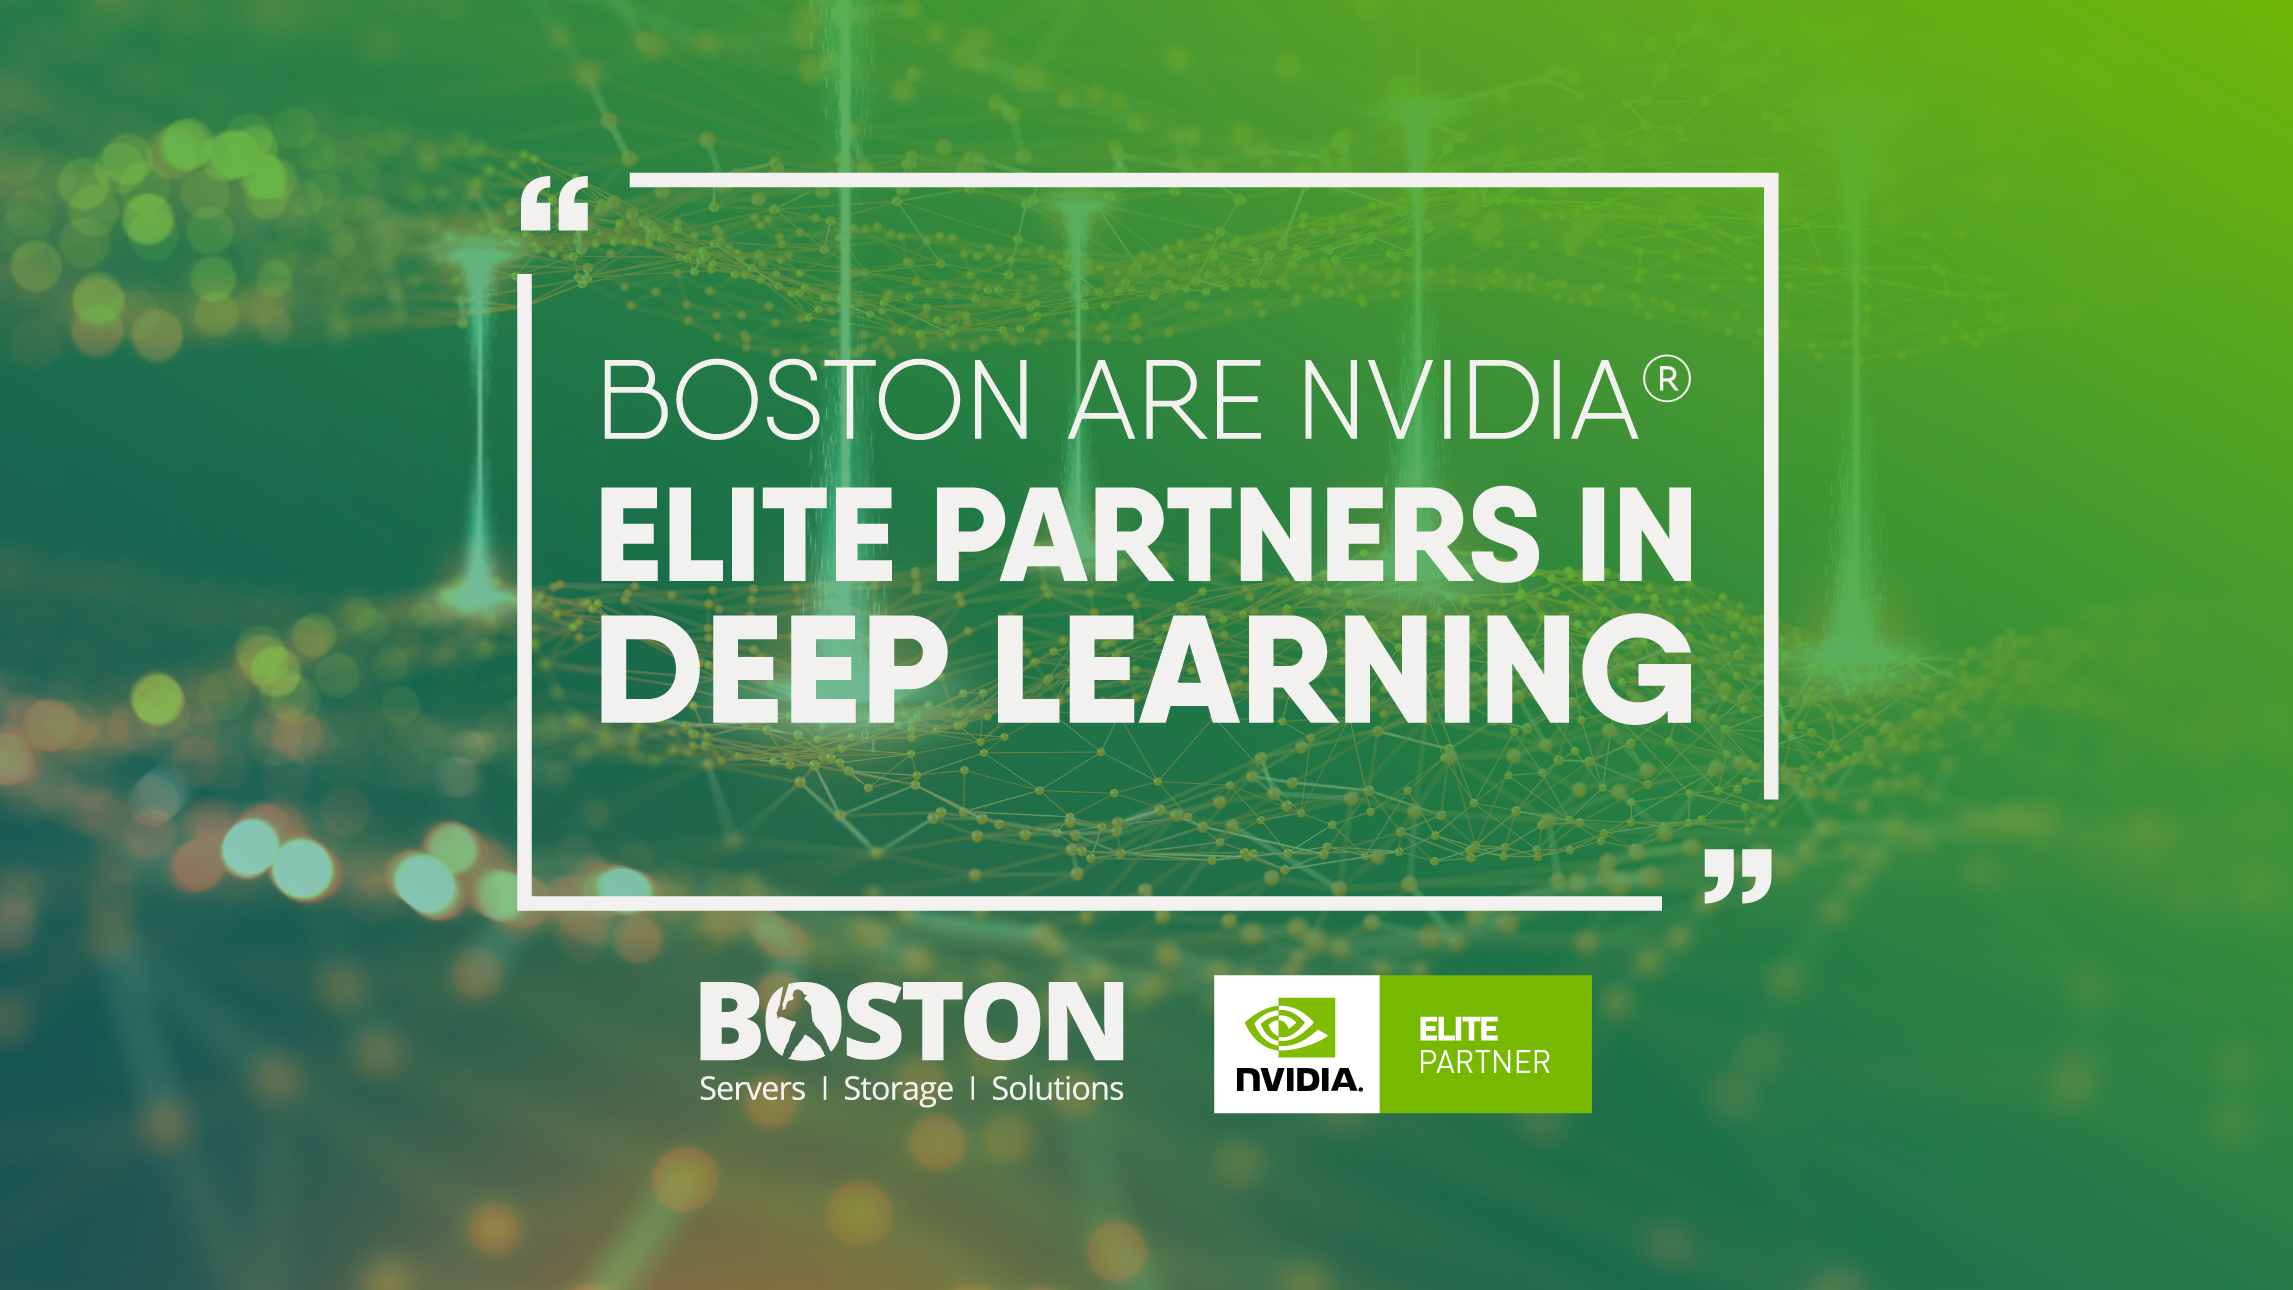 Boston Limited Achieves NVIDIA Elite Deep Learning Partner